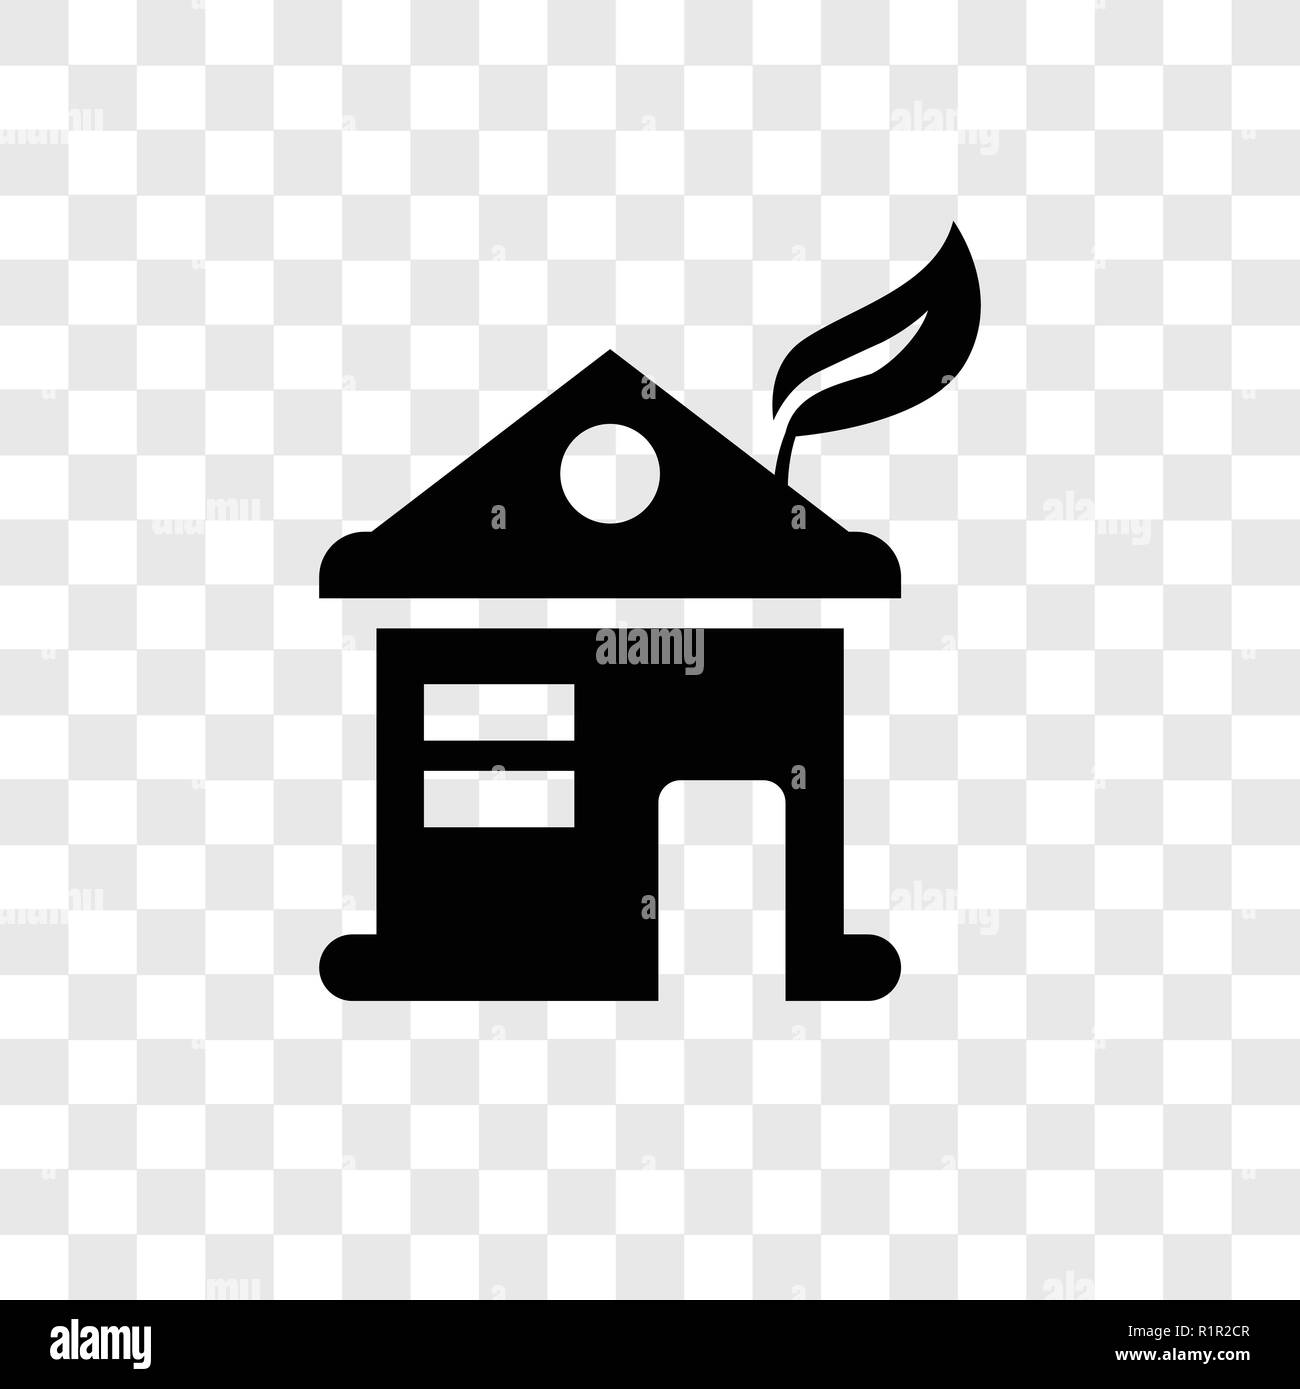 Eco house vector icon isolated on transparent background, Eco house transparency logo concept - Stock Image